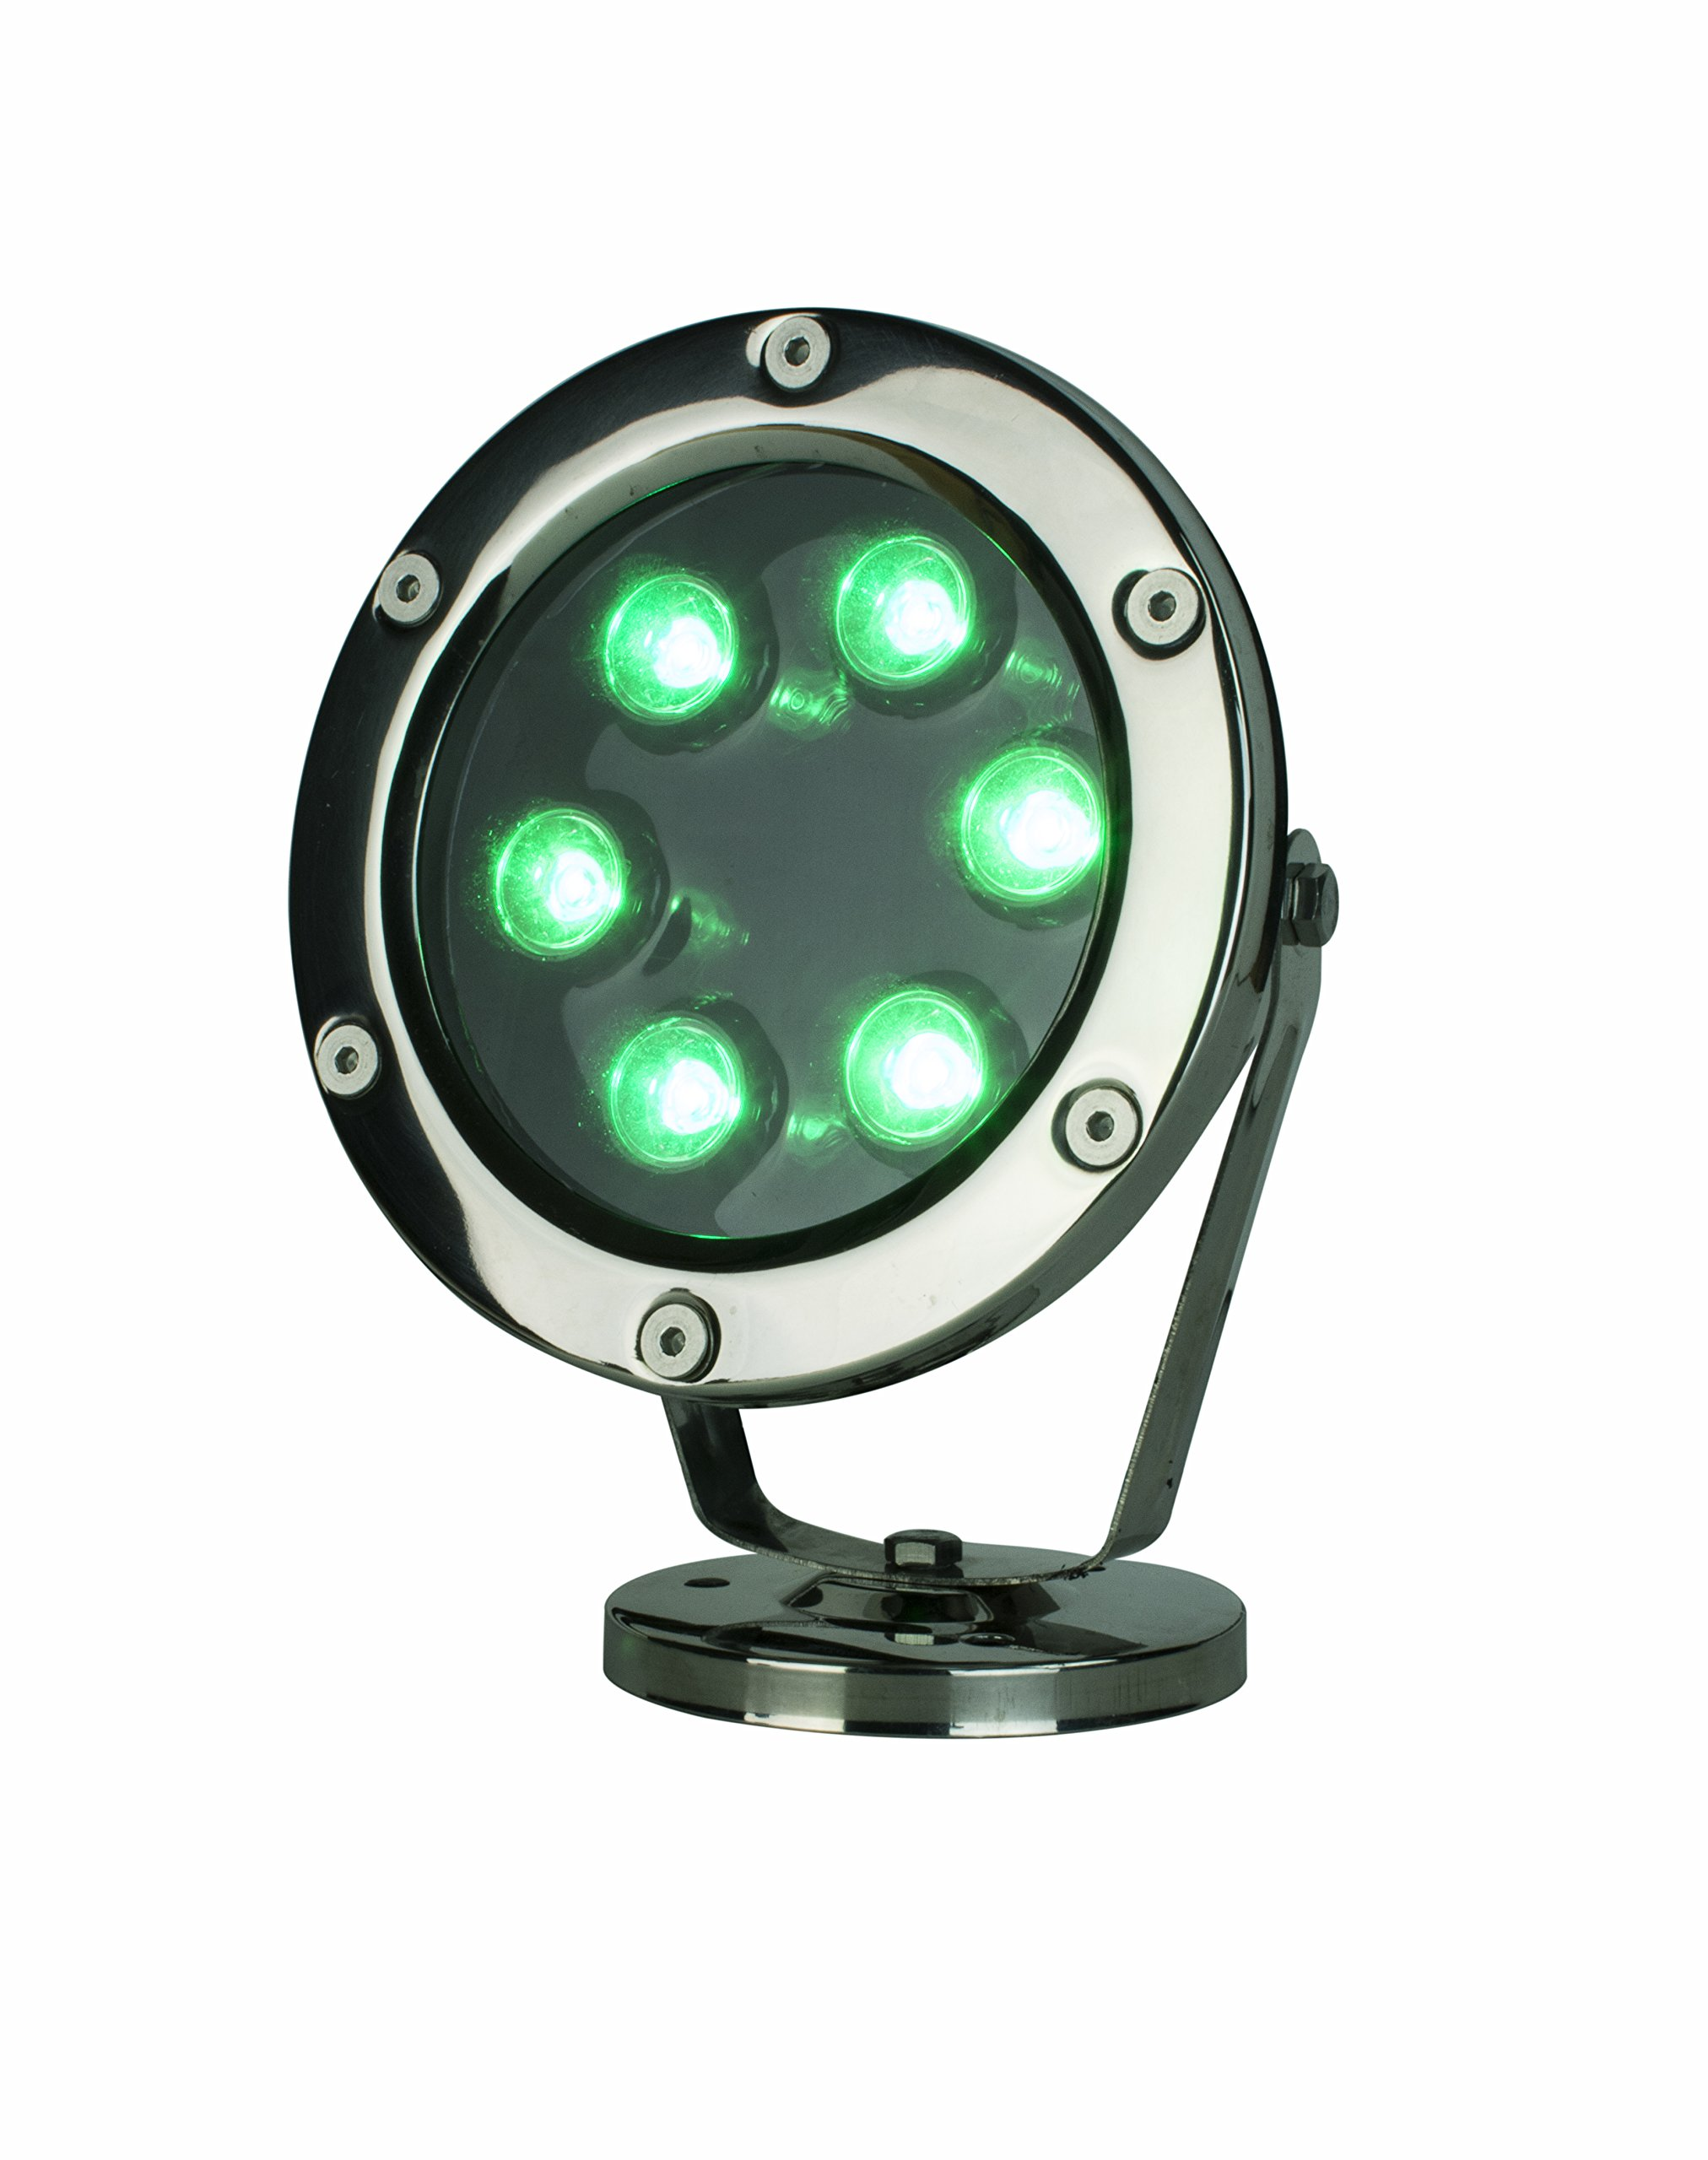 Lifegard R441003 Submersible Pond and Fountain LED Light, Green